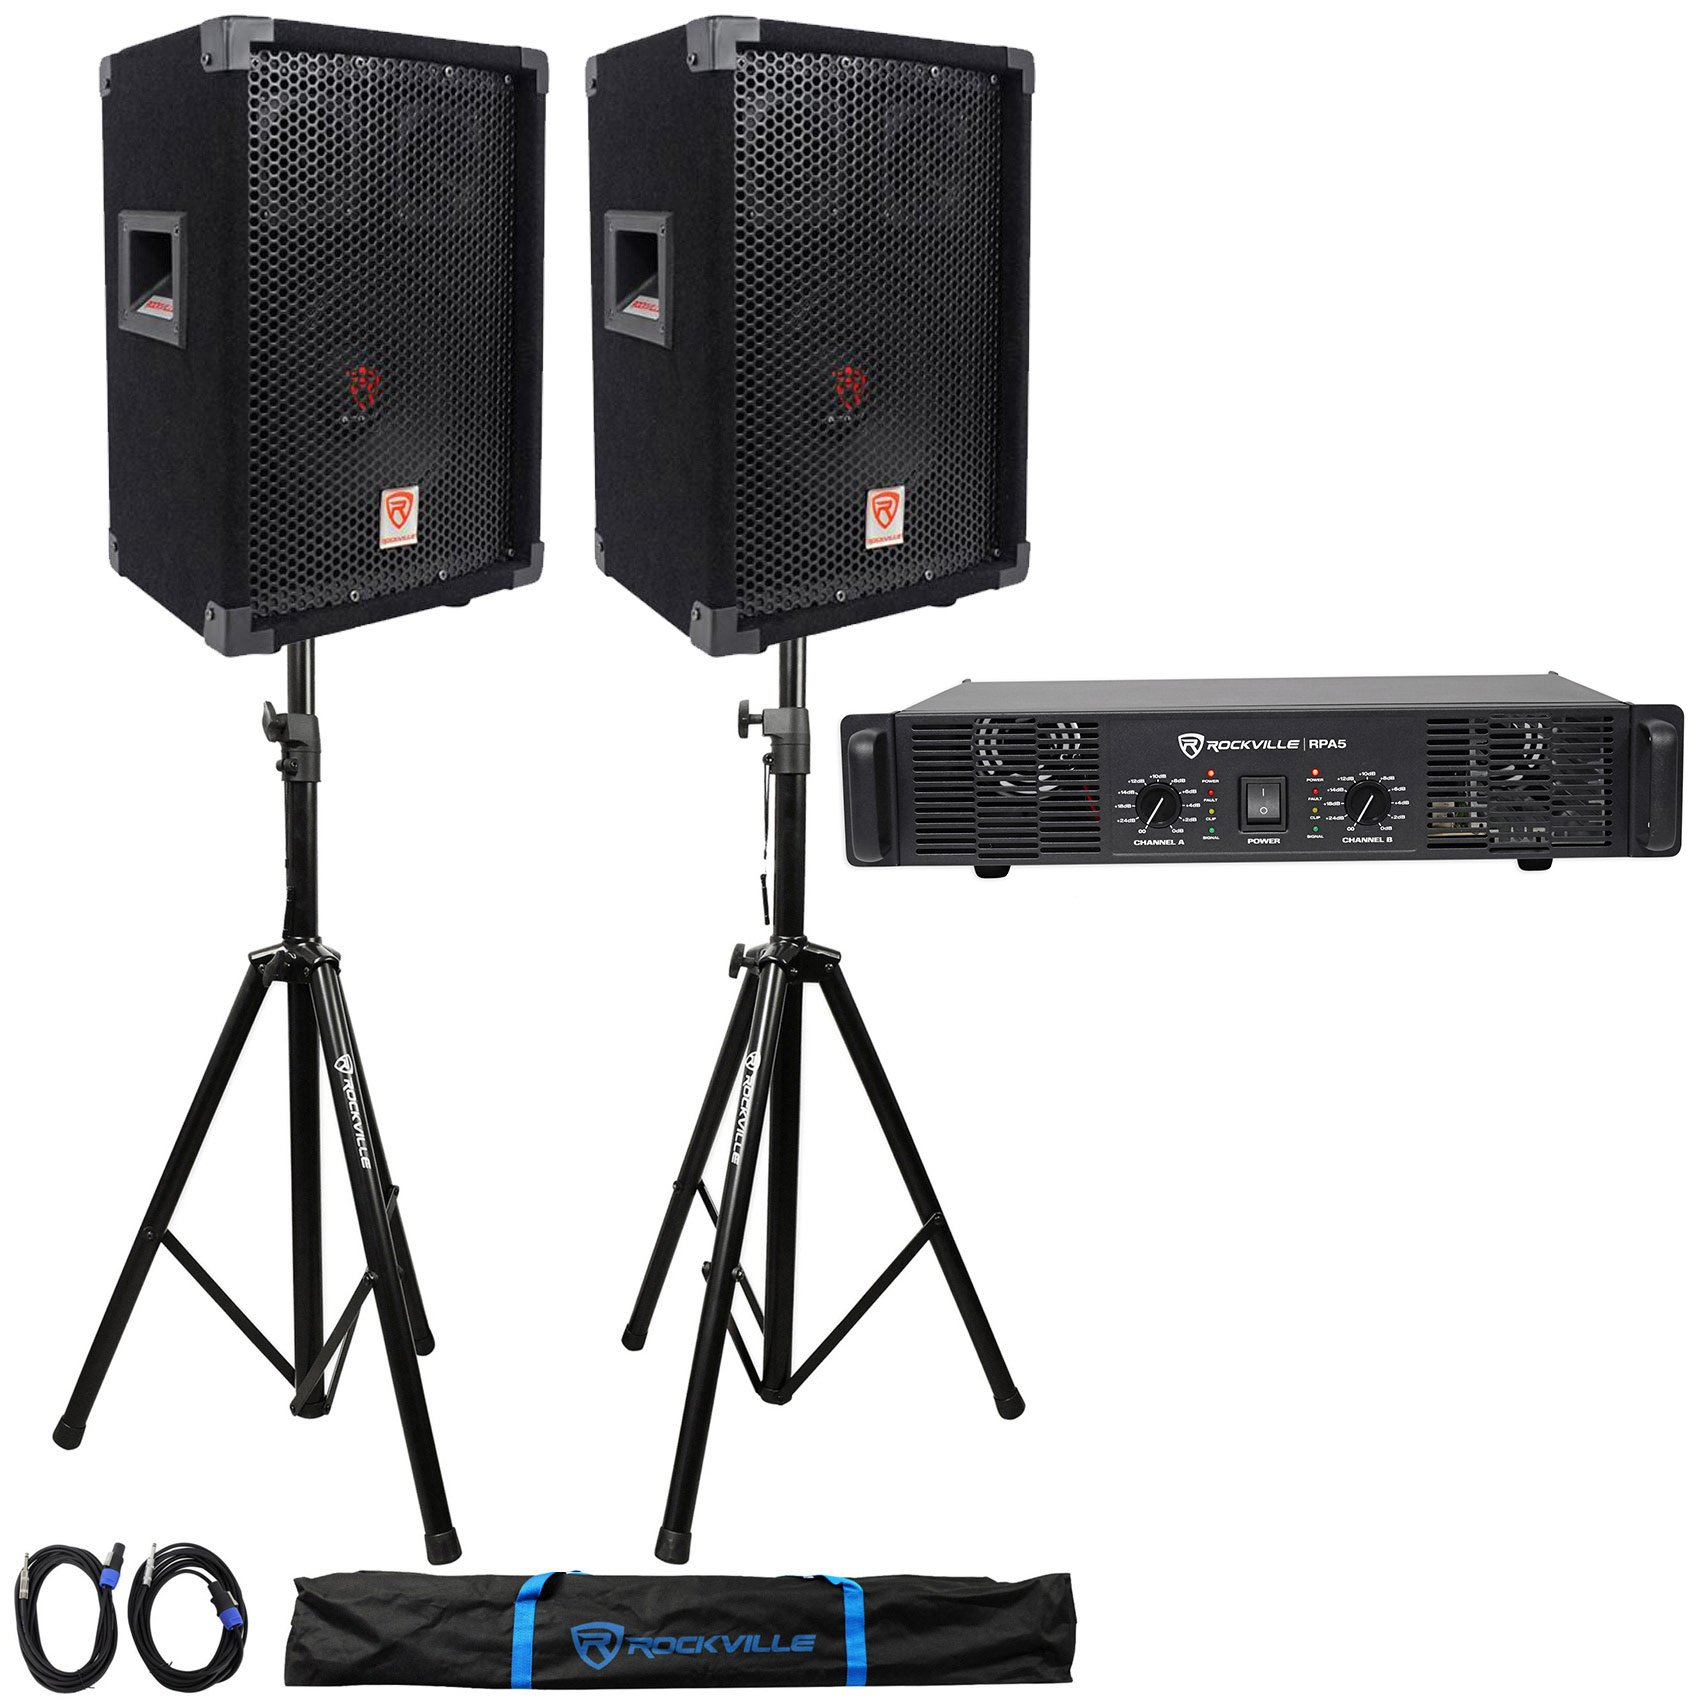 (2) Rockville RSG8 DJ PA Speaker + Rockville RPA5 Amp + Stands + Cables+ Case by Rockville